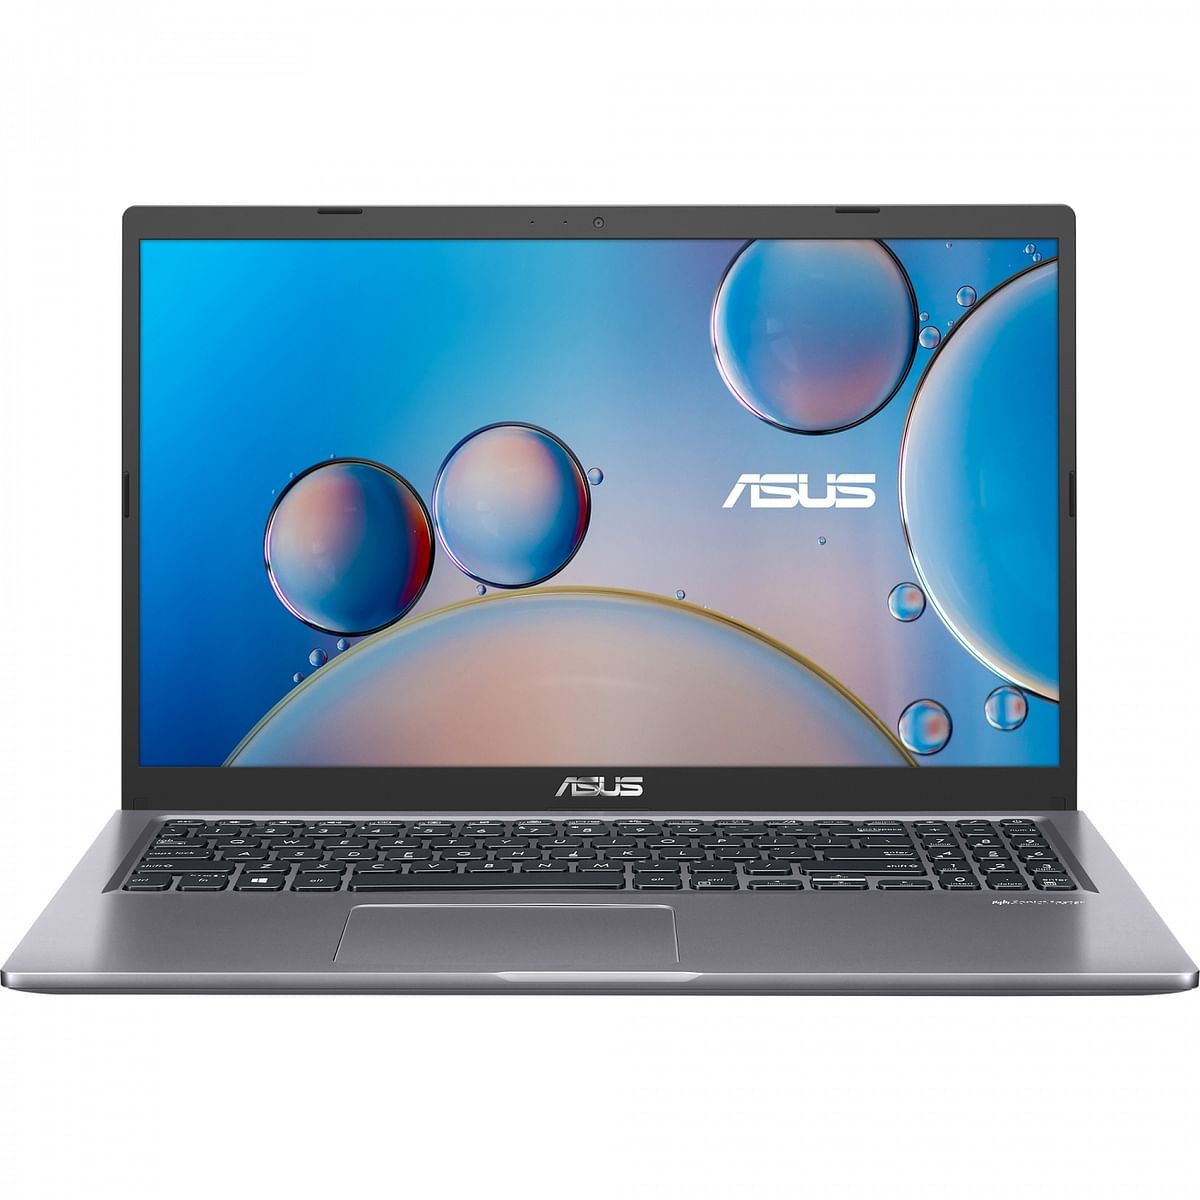 Asus ZenBook, VivoBook Launched: Check Price, Specifications